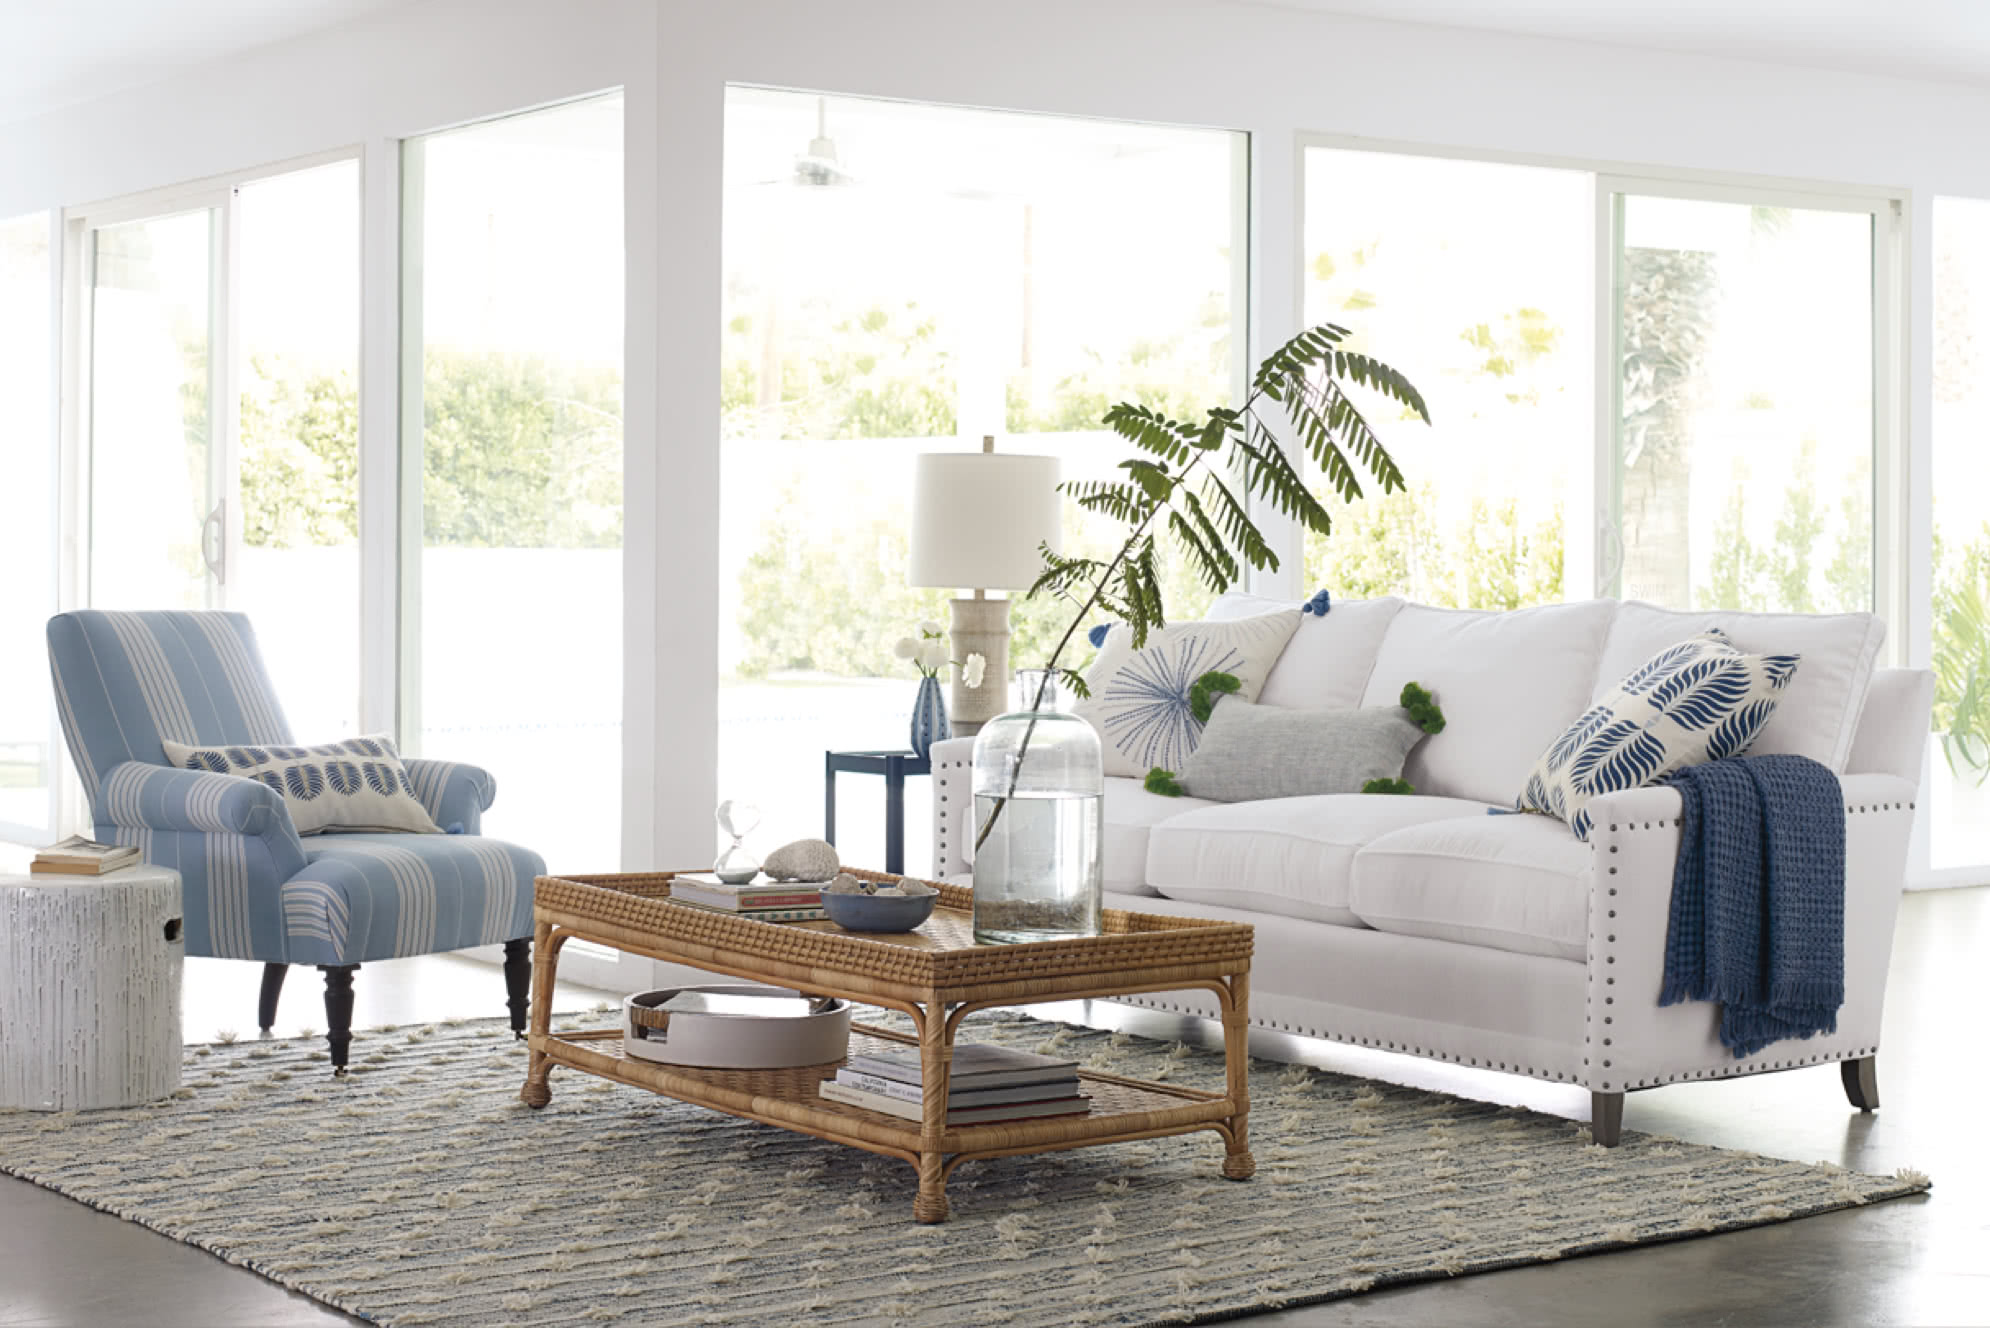 Photos Of Living Room Designs Shop The Look Living Room Designer Rooms Serena Lily